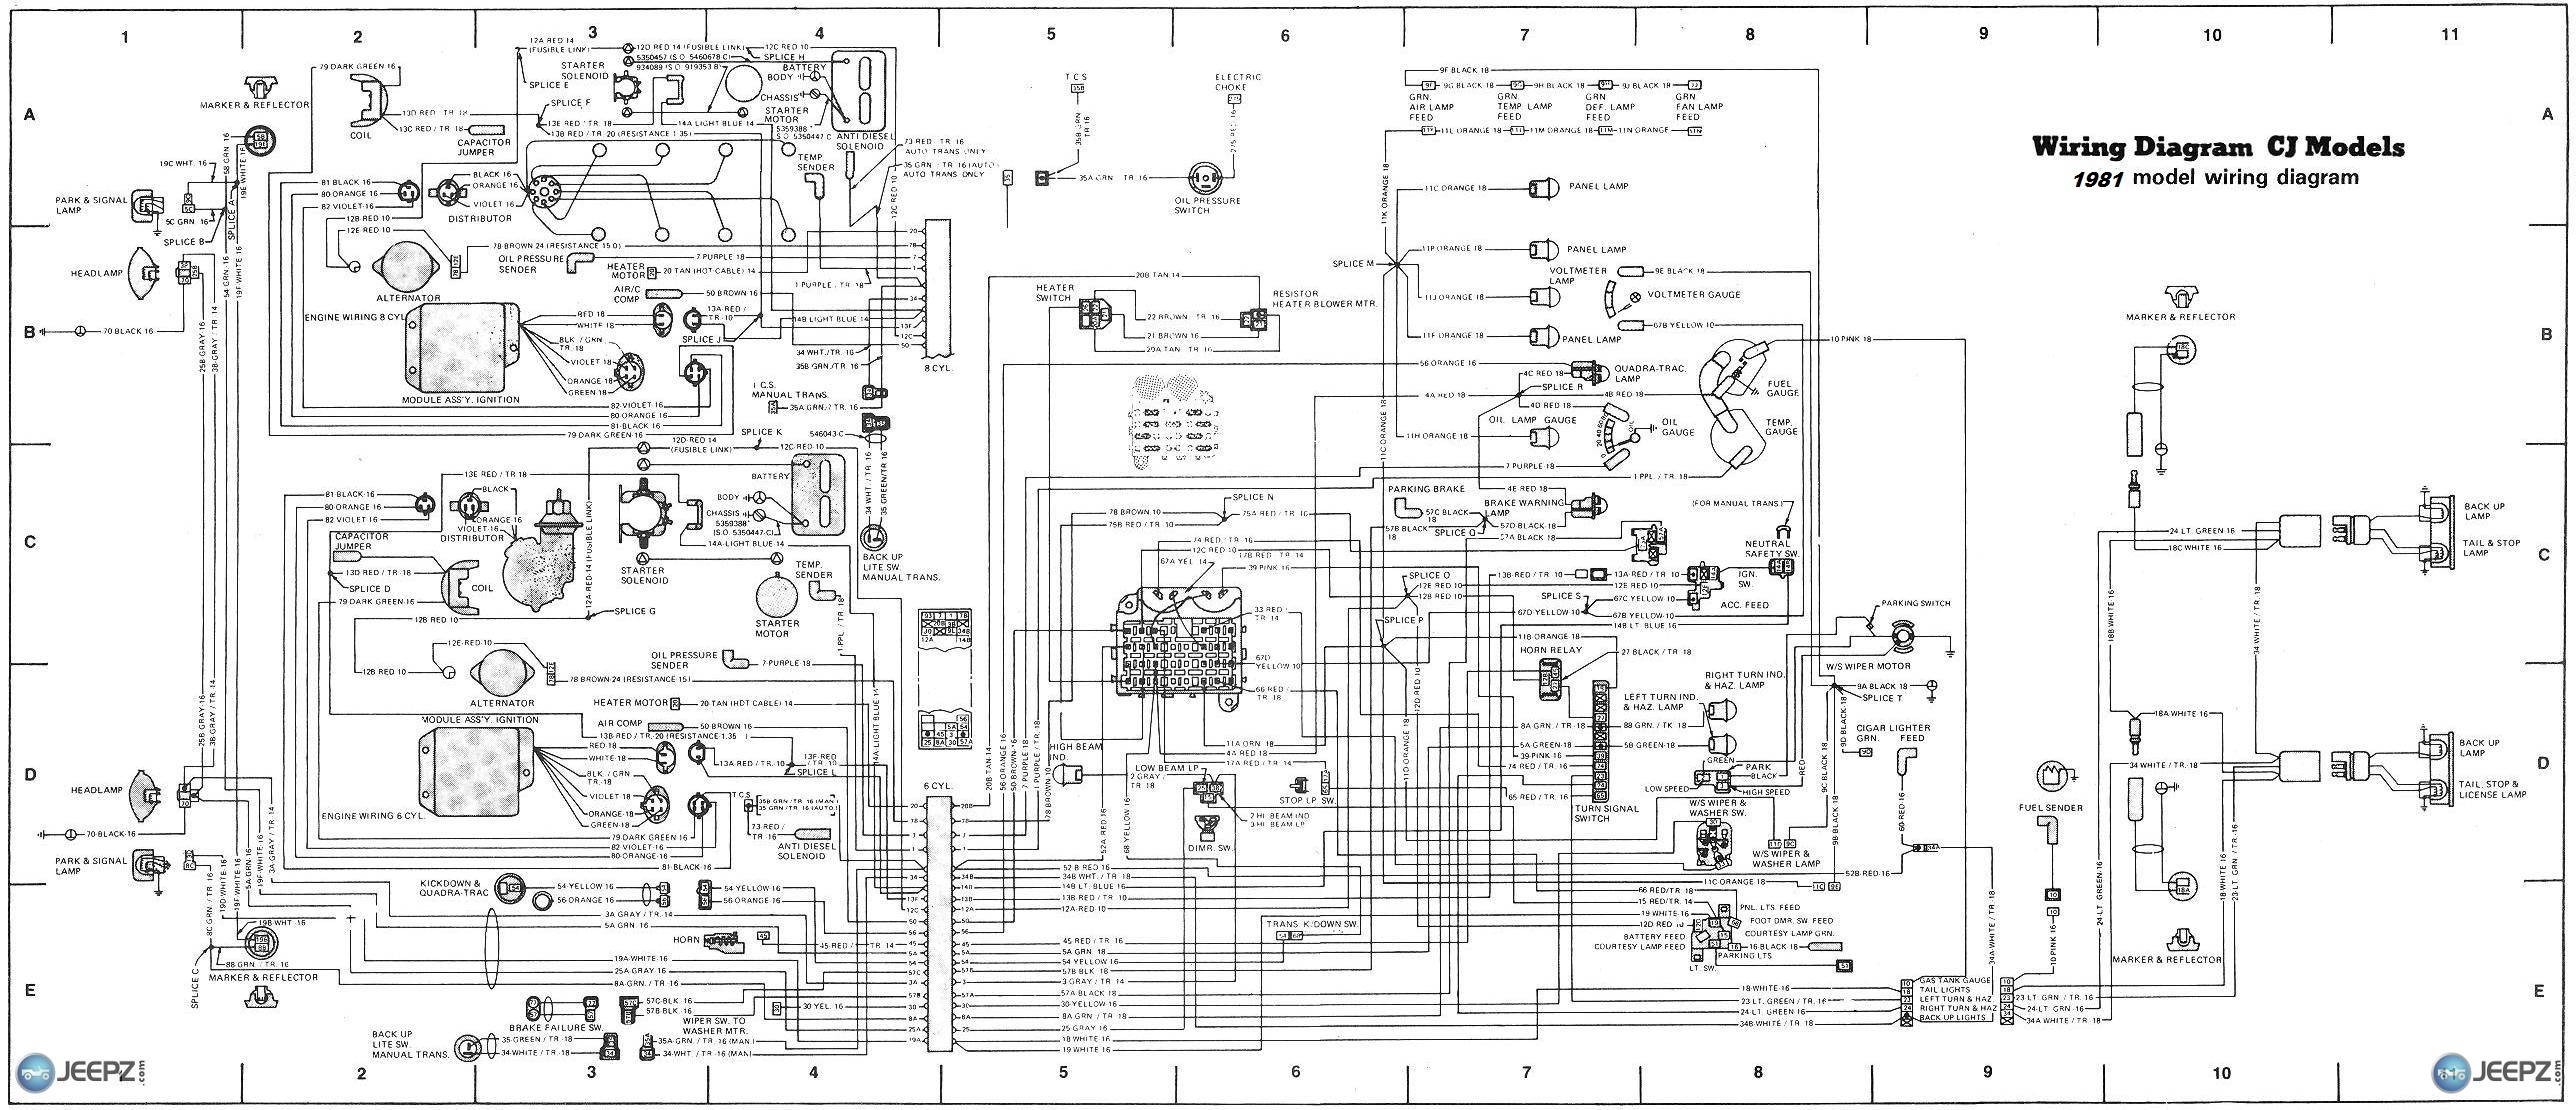 81 Jeep Cj7 Wiring - Wiring Diagram Networks | 1980 Cj7 Wiring Schematic |  | Wiring Diagram Networks - blogger